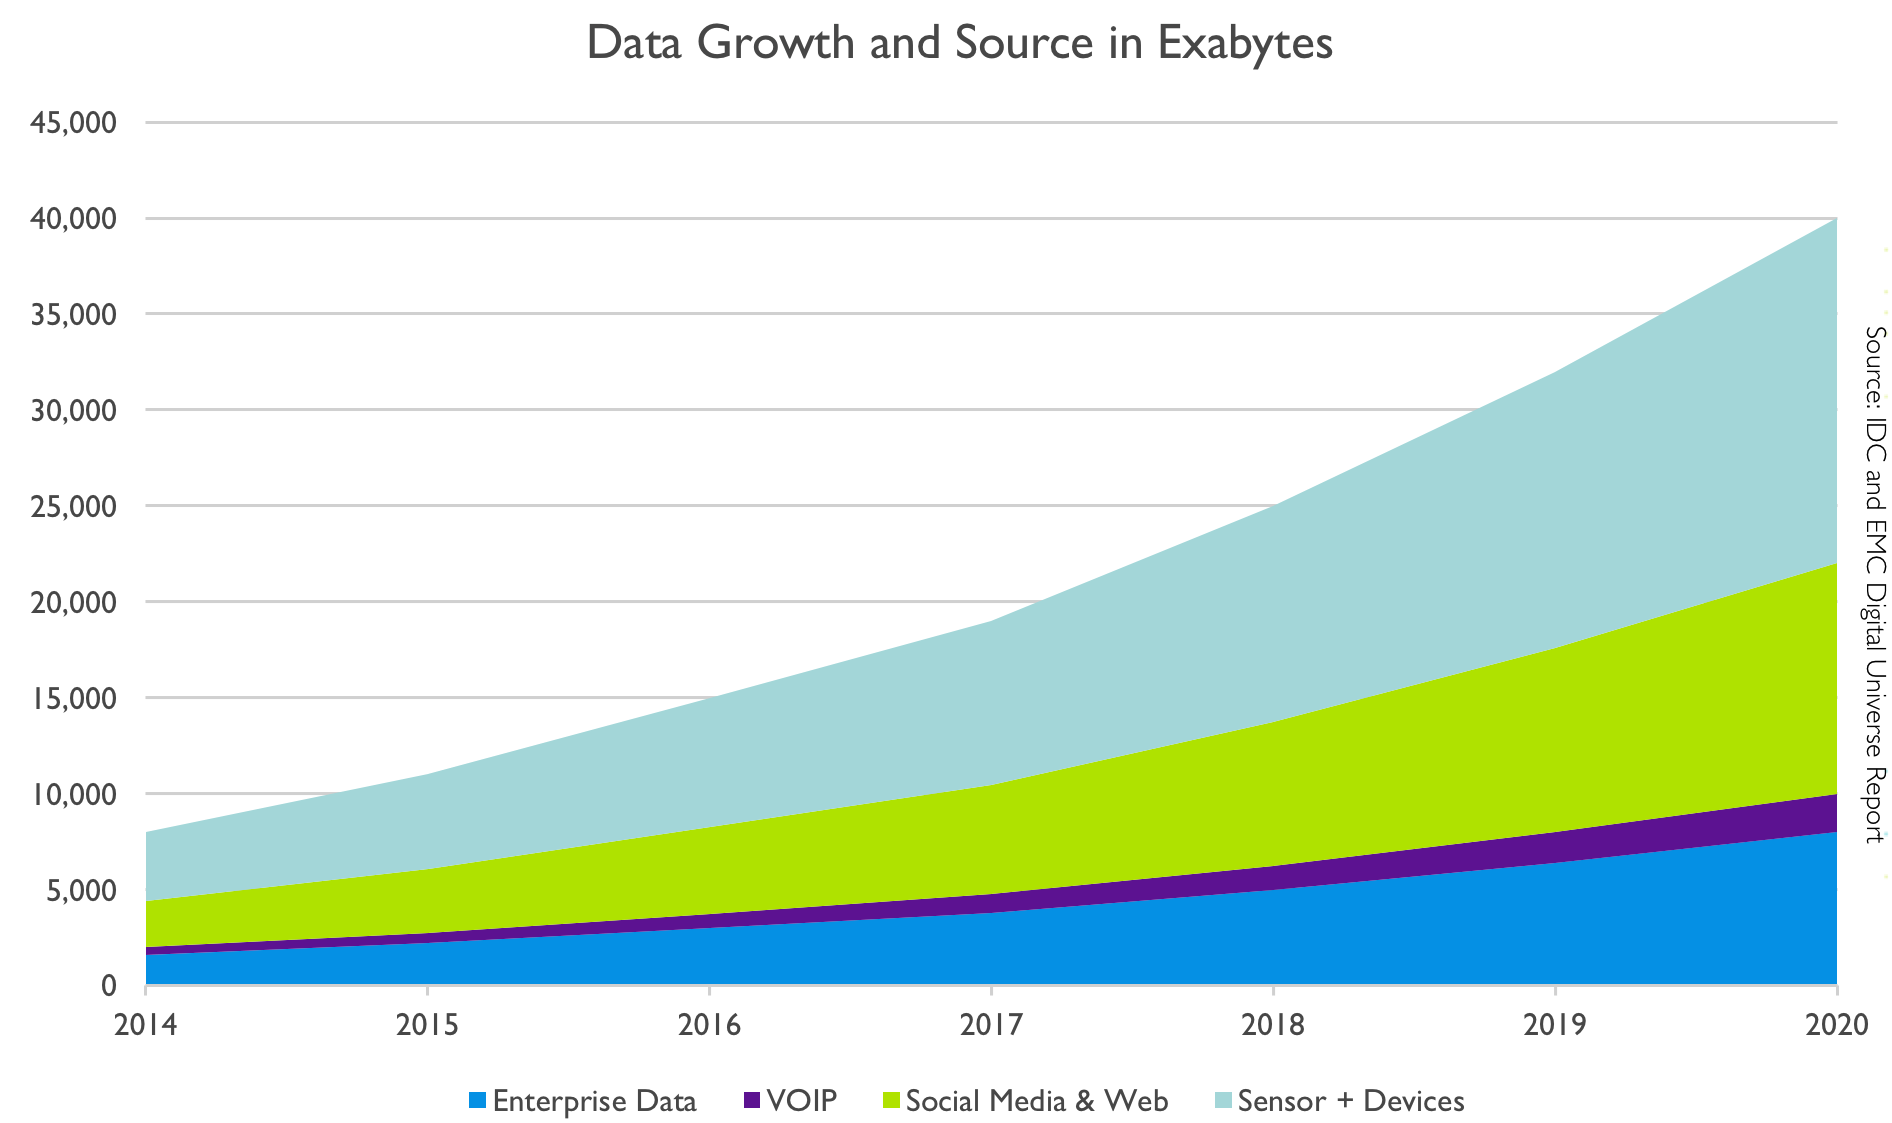 Data growth